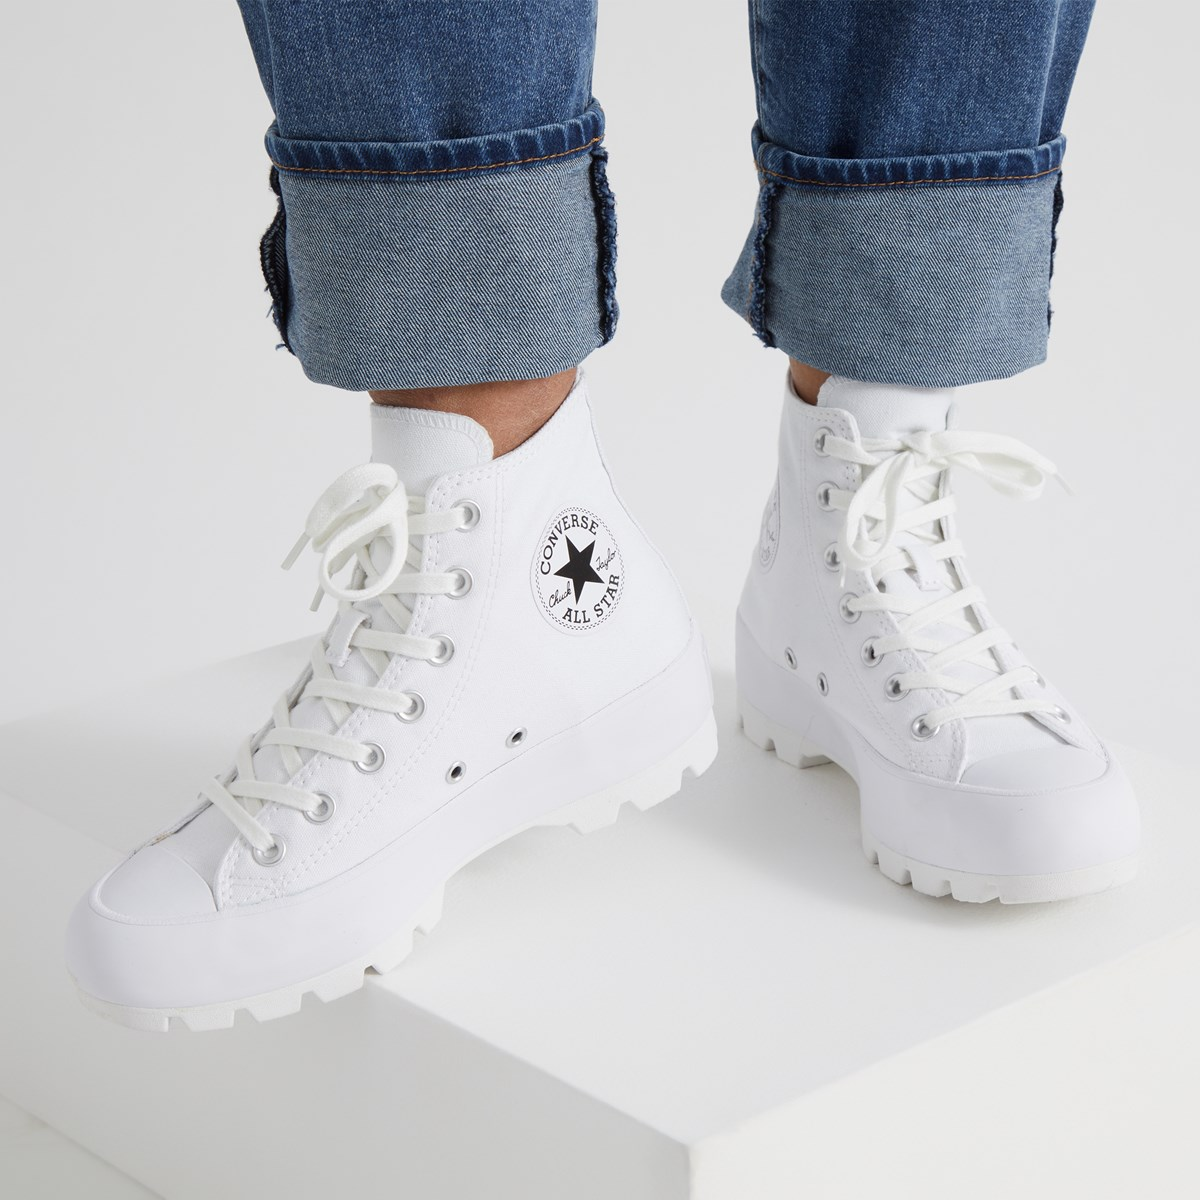 converse chuck taylor lugged